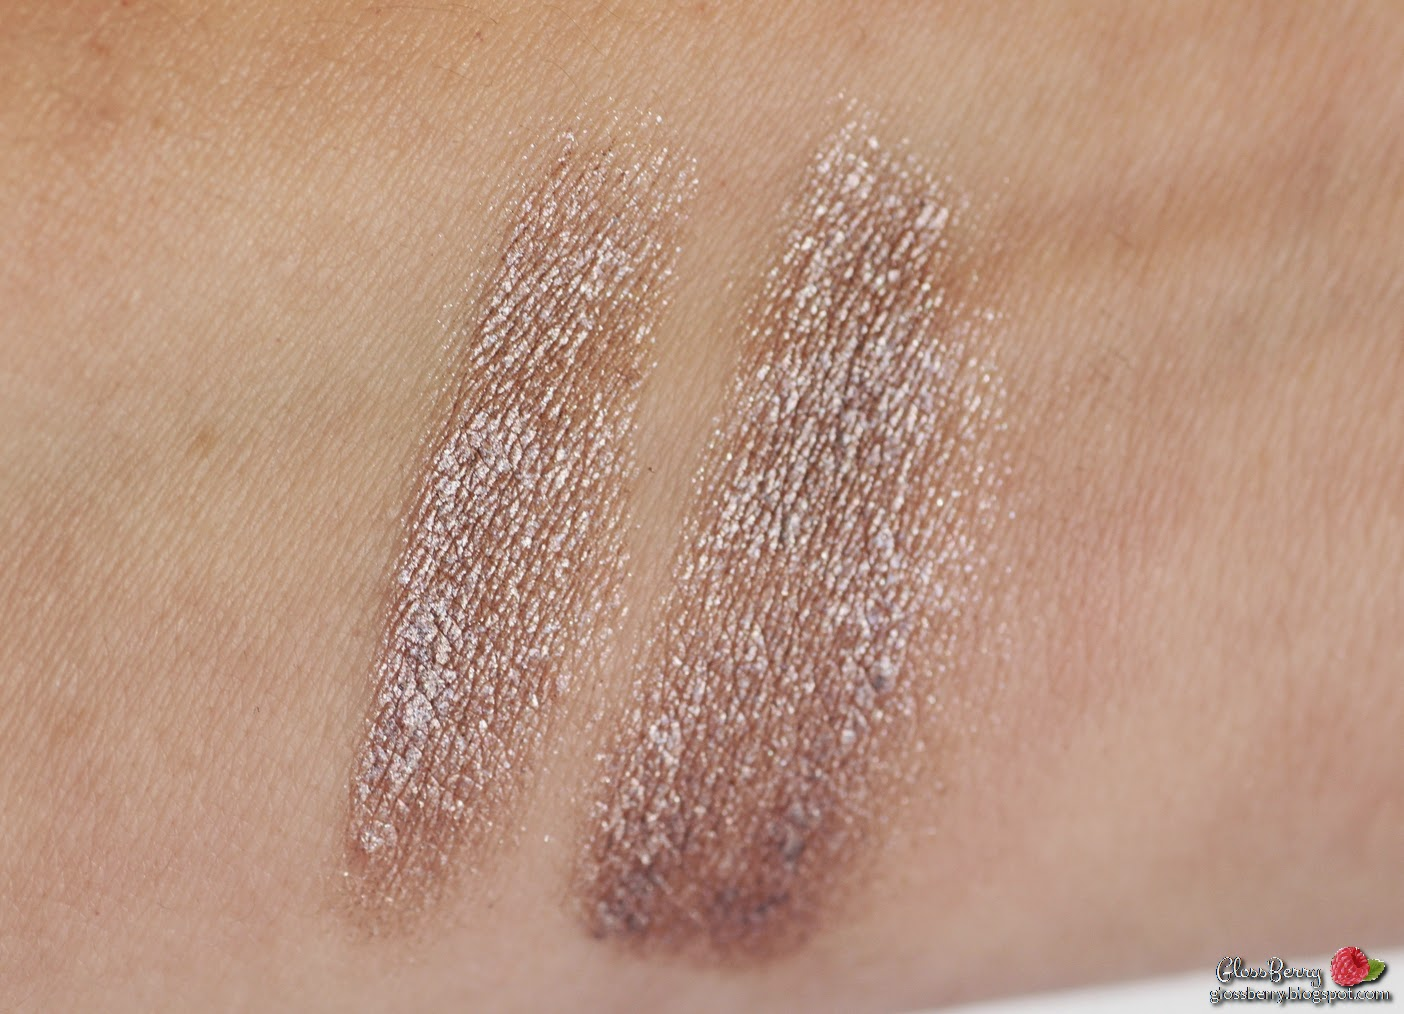 pupa matic stylo eyeshadow stick taupe review swatches 002 צללית סטיק פופה